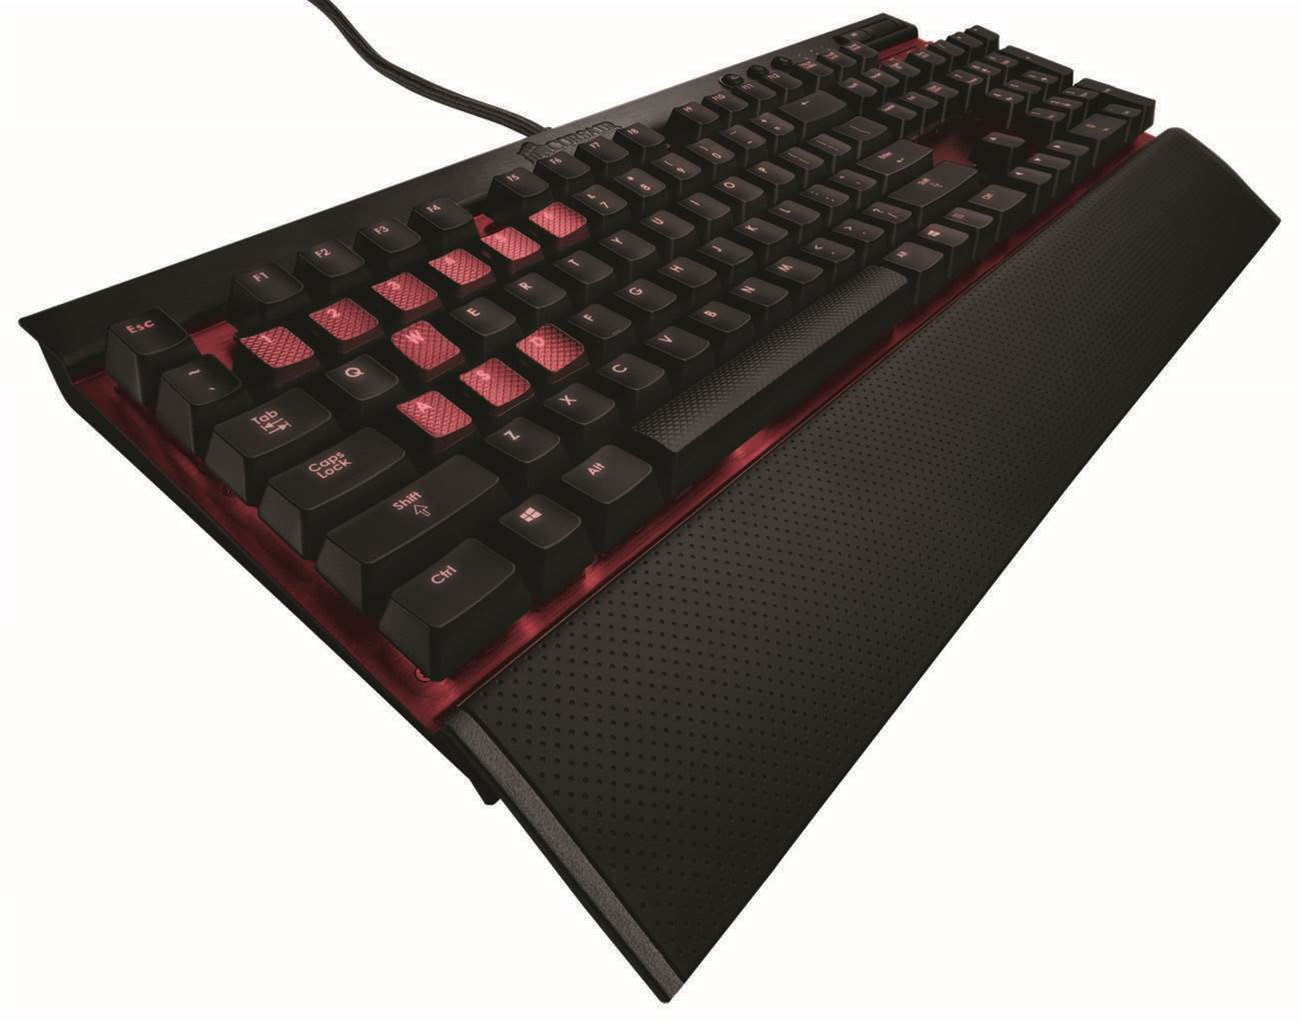 Review: Corsair K70